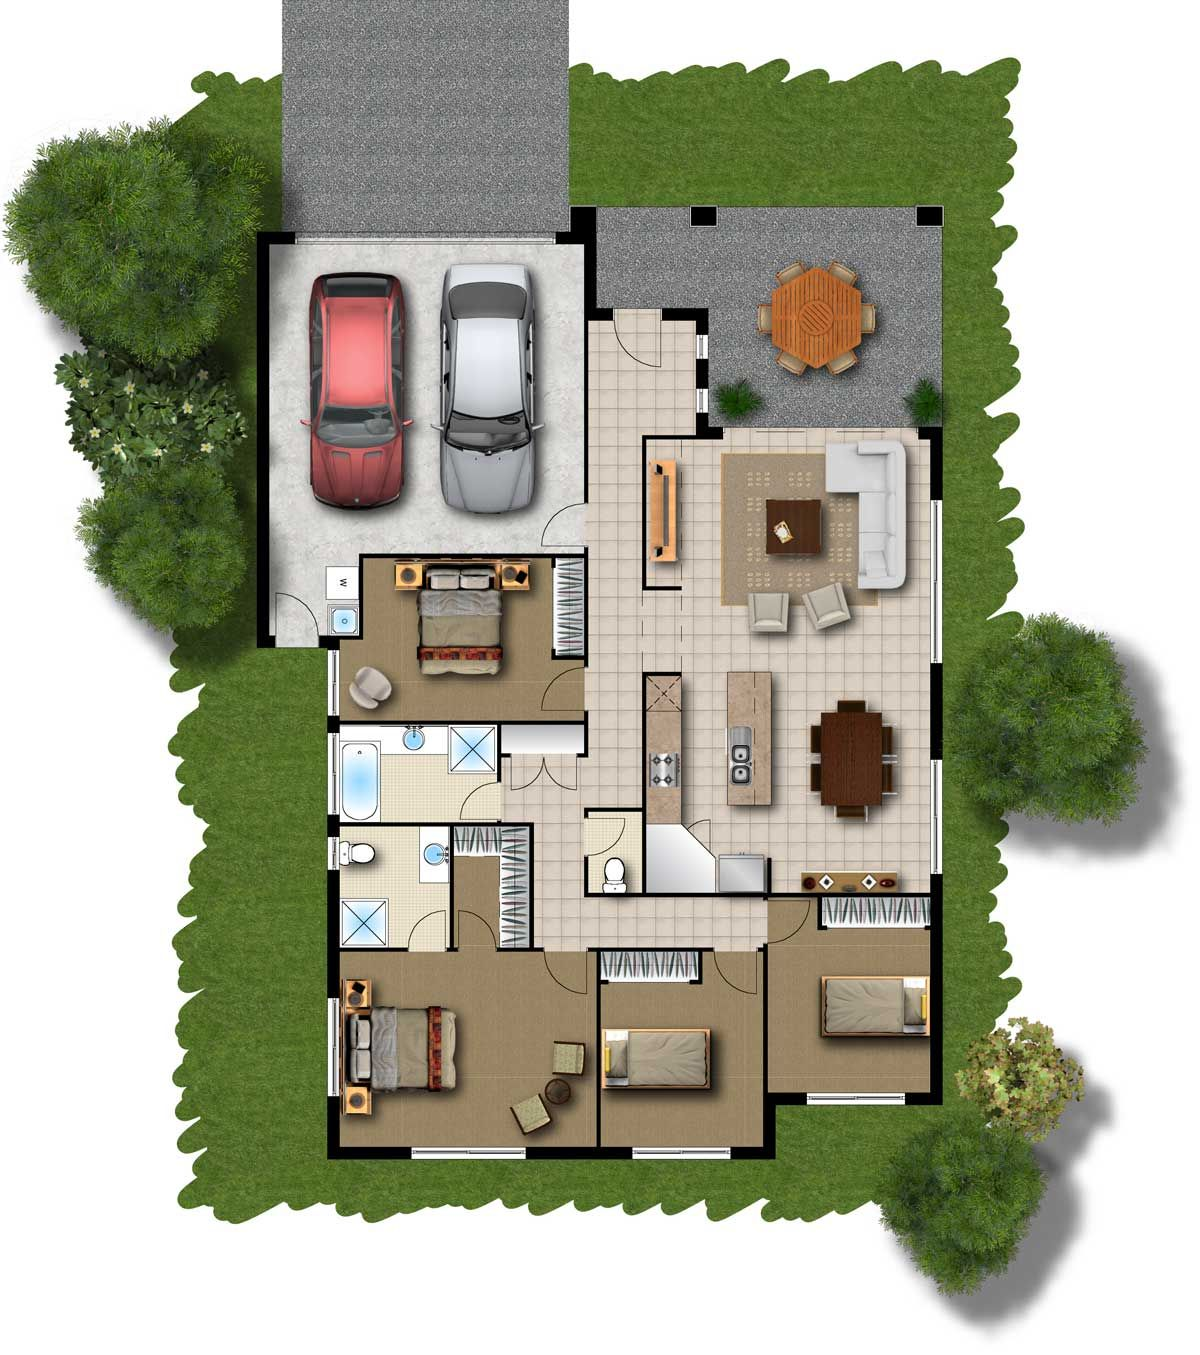 Home Plans Of This Website Country House Plans One Story Browse Nearly 40000 Ready Made House